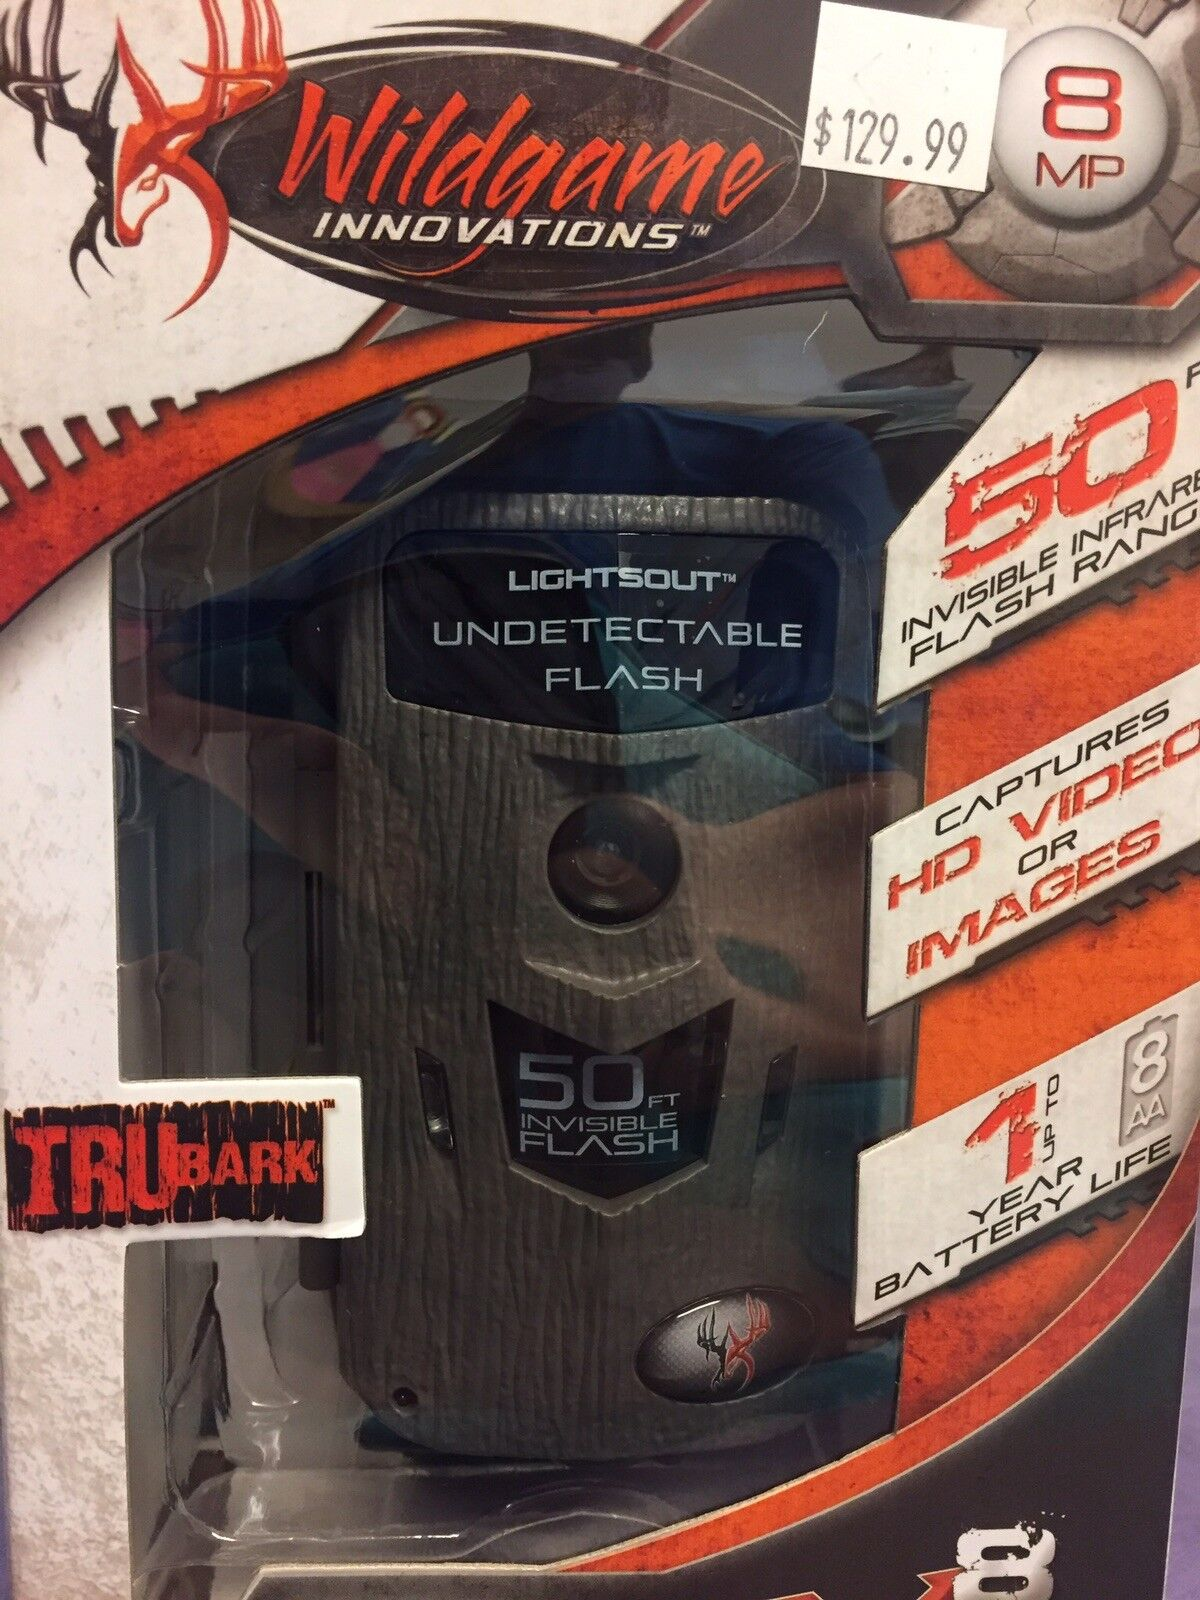 New Wildgame Innovations MICRO CRUSH X8 Lightsout Infrared Trail Security Camera